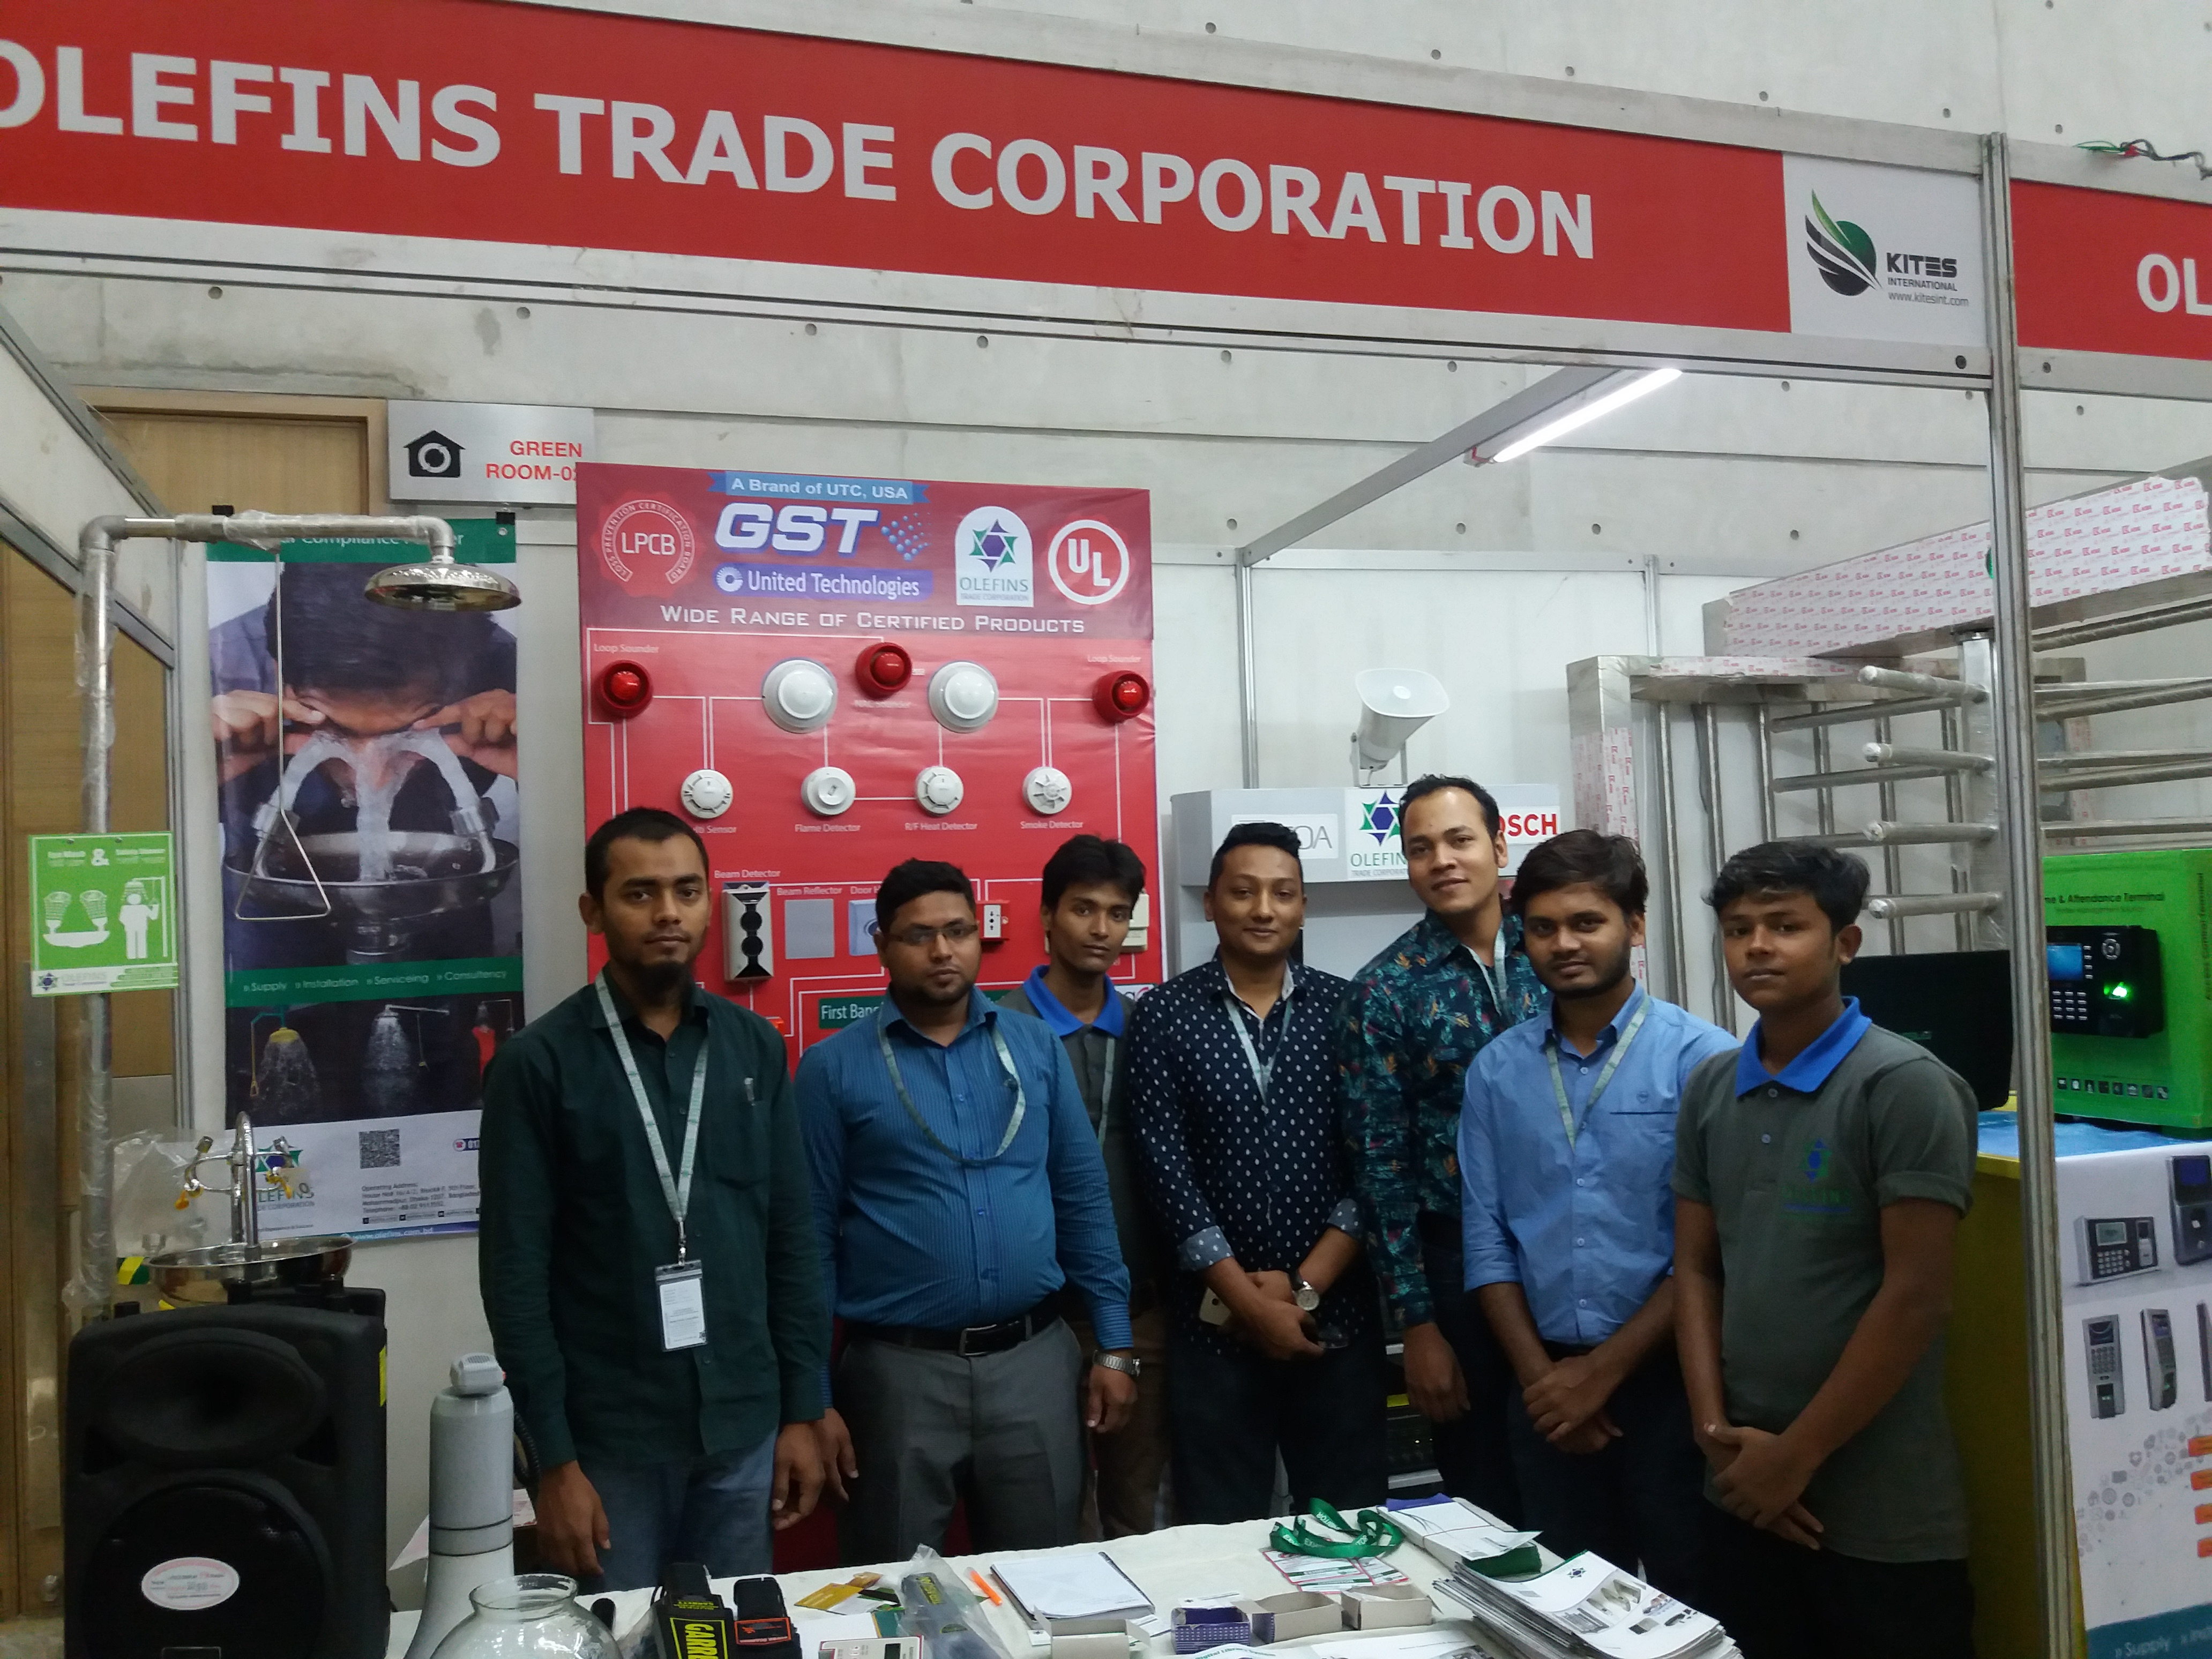 all olefins staff